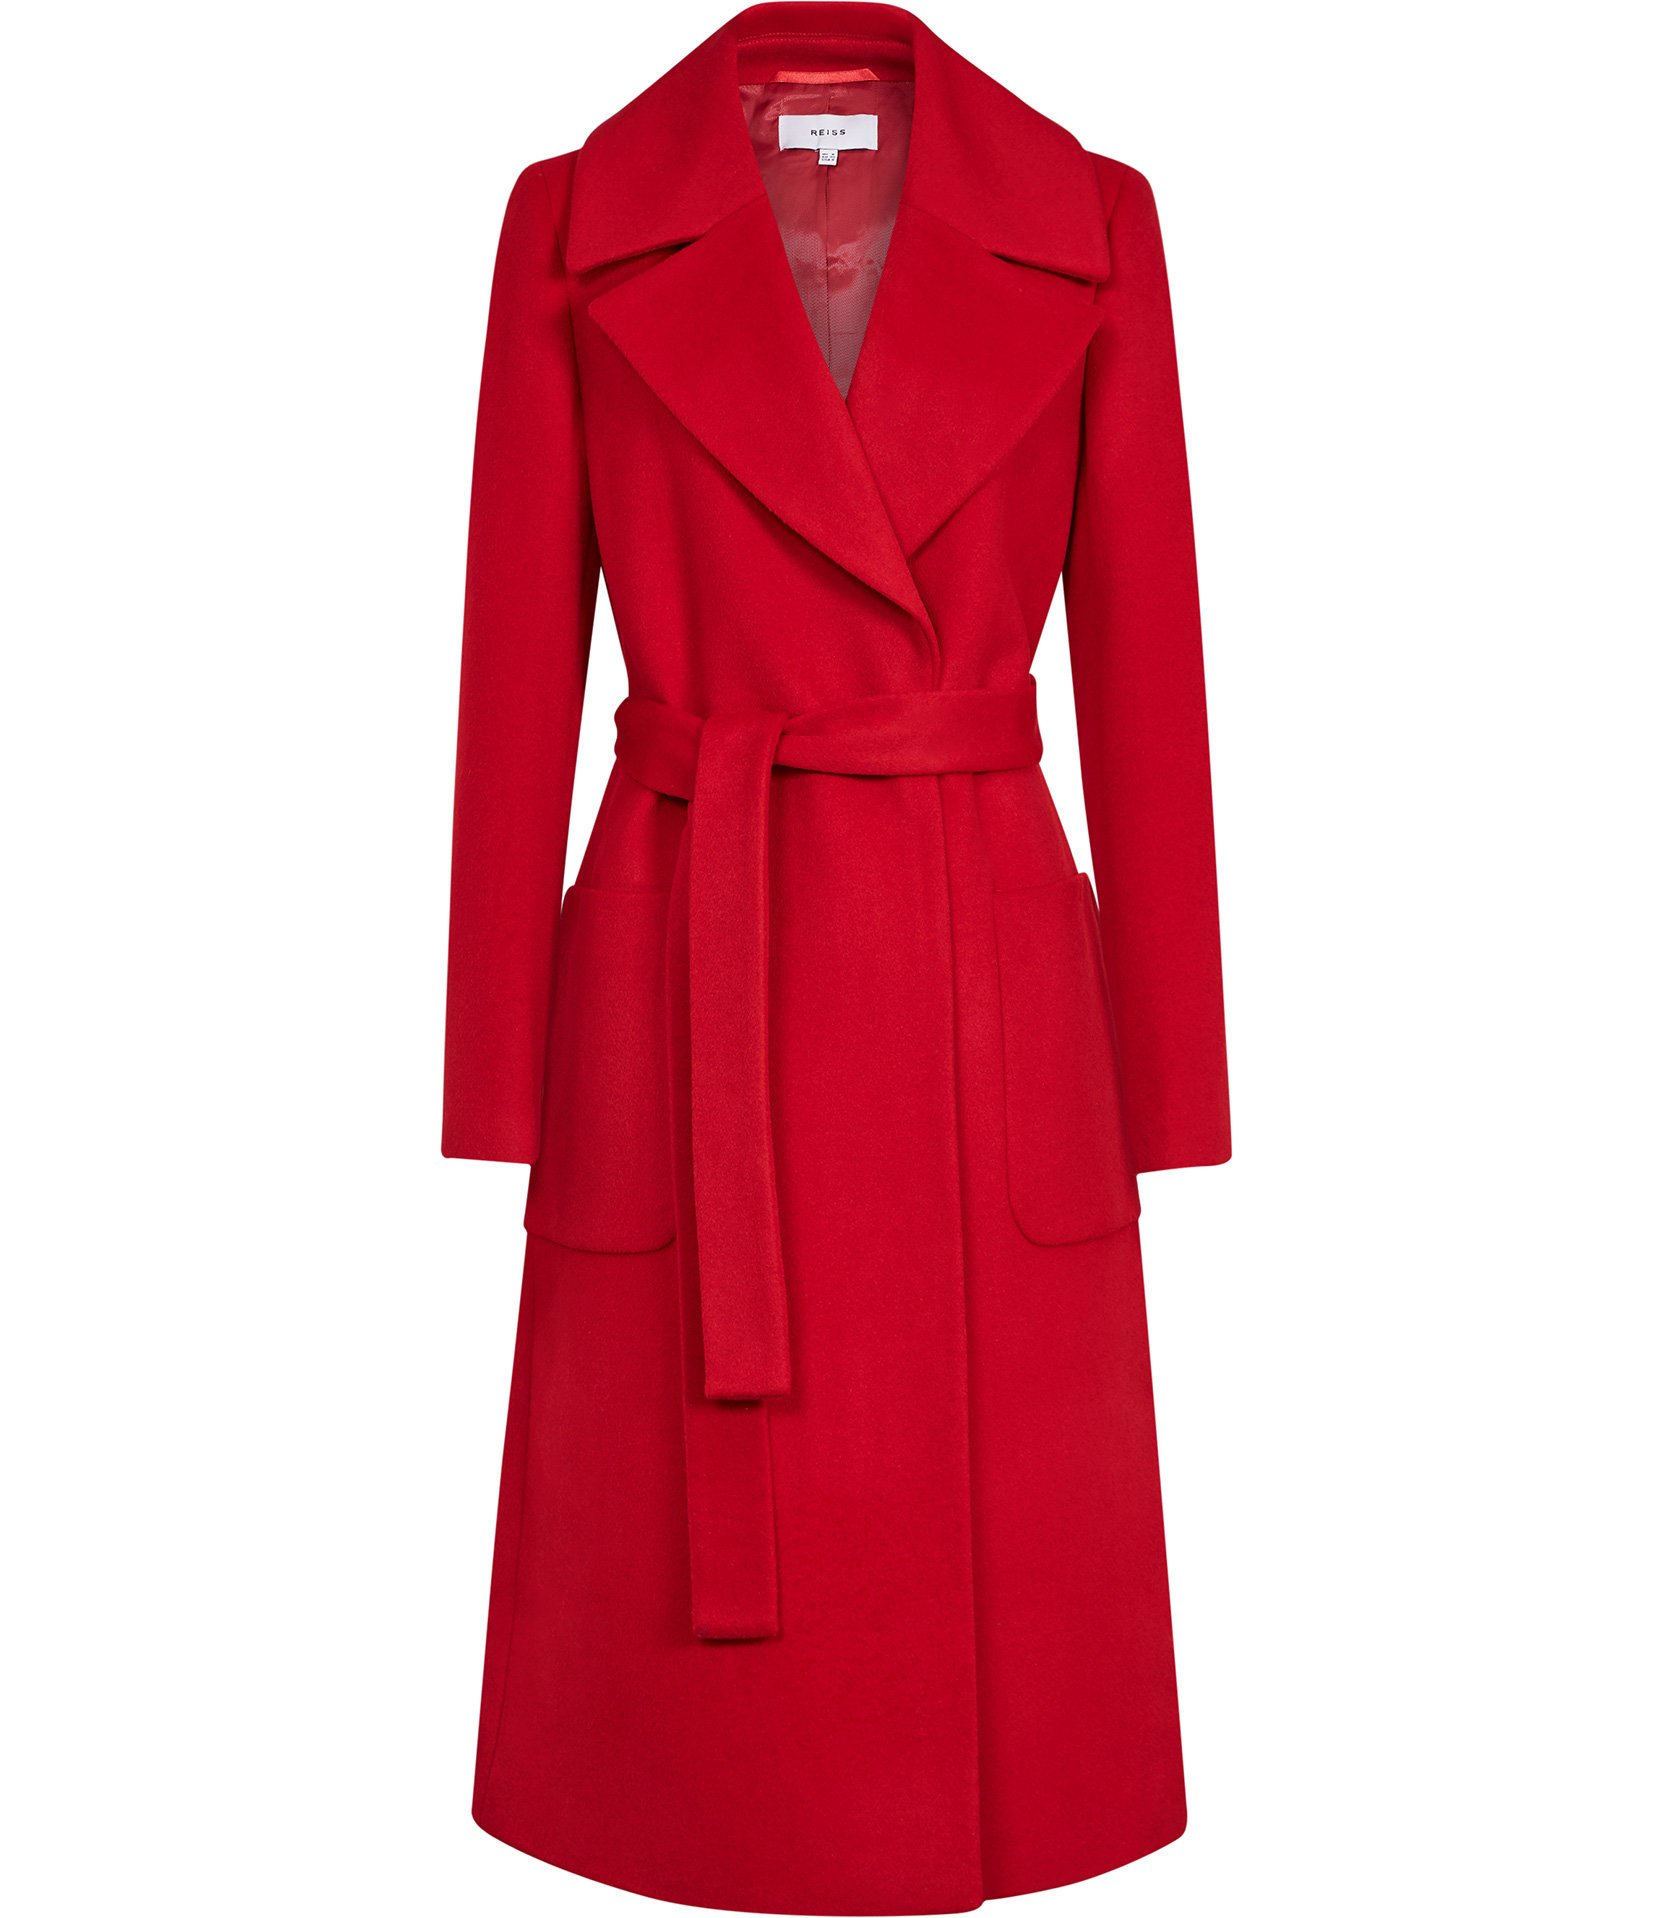 Chiltern Longline Coat, Dhs1,795.